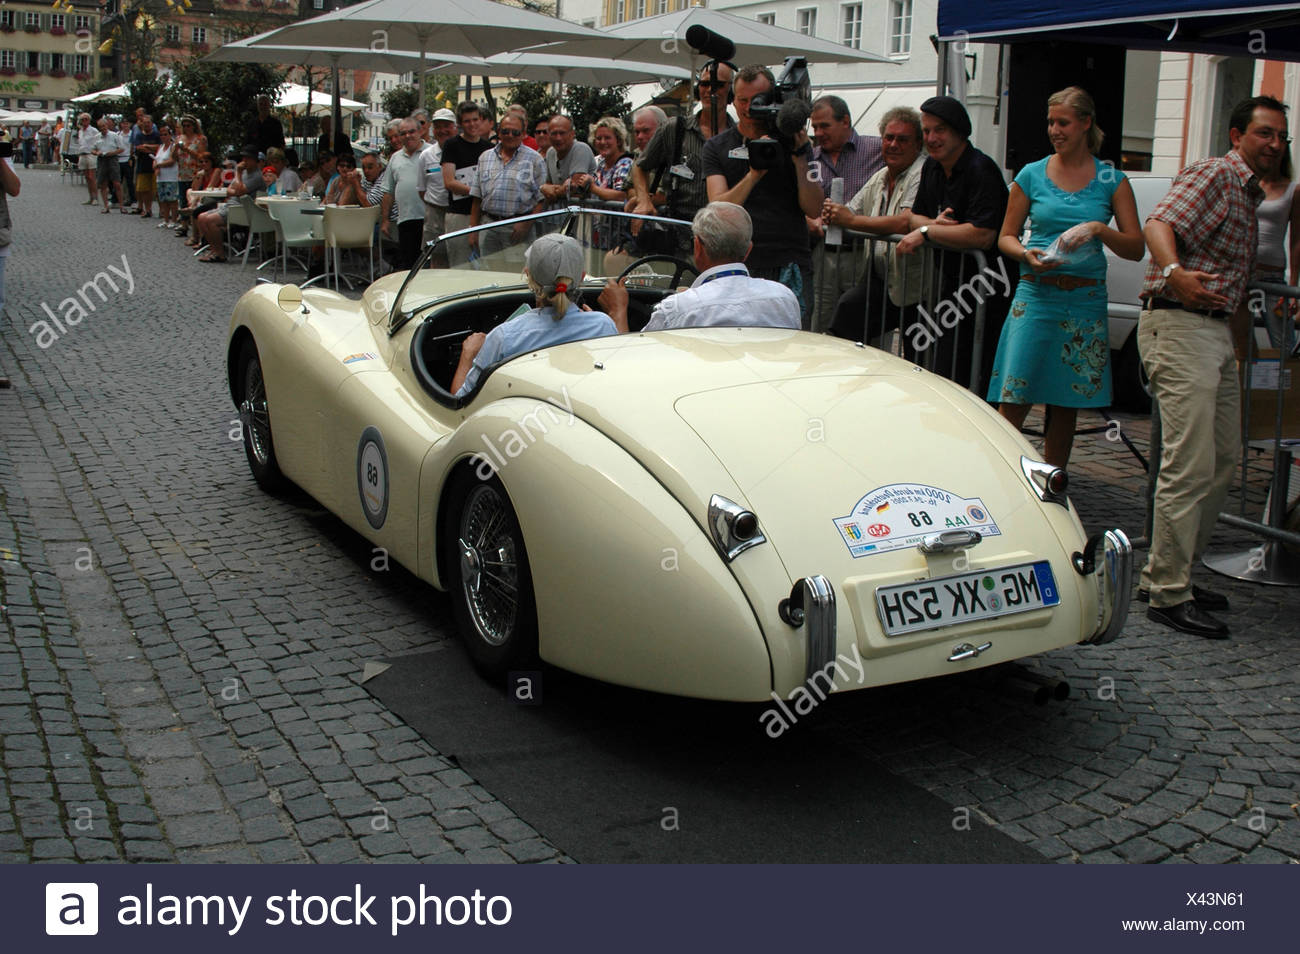 Vintage Jaguar, Vintage Car Rally, 2000 Km Through Germany, Schwaebisch  Gmuend, Baden Wuerttemberg, Germany, Europe